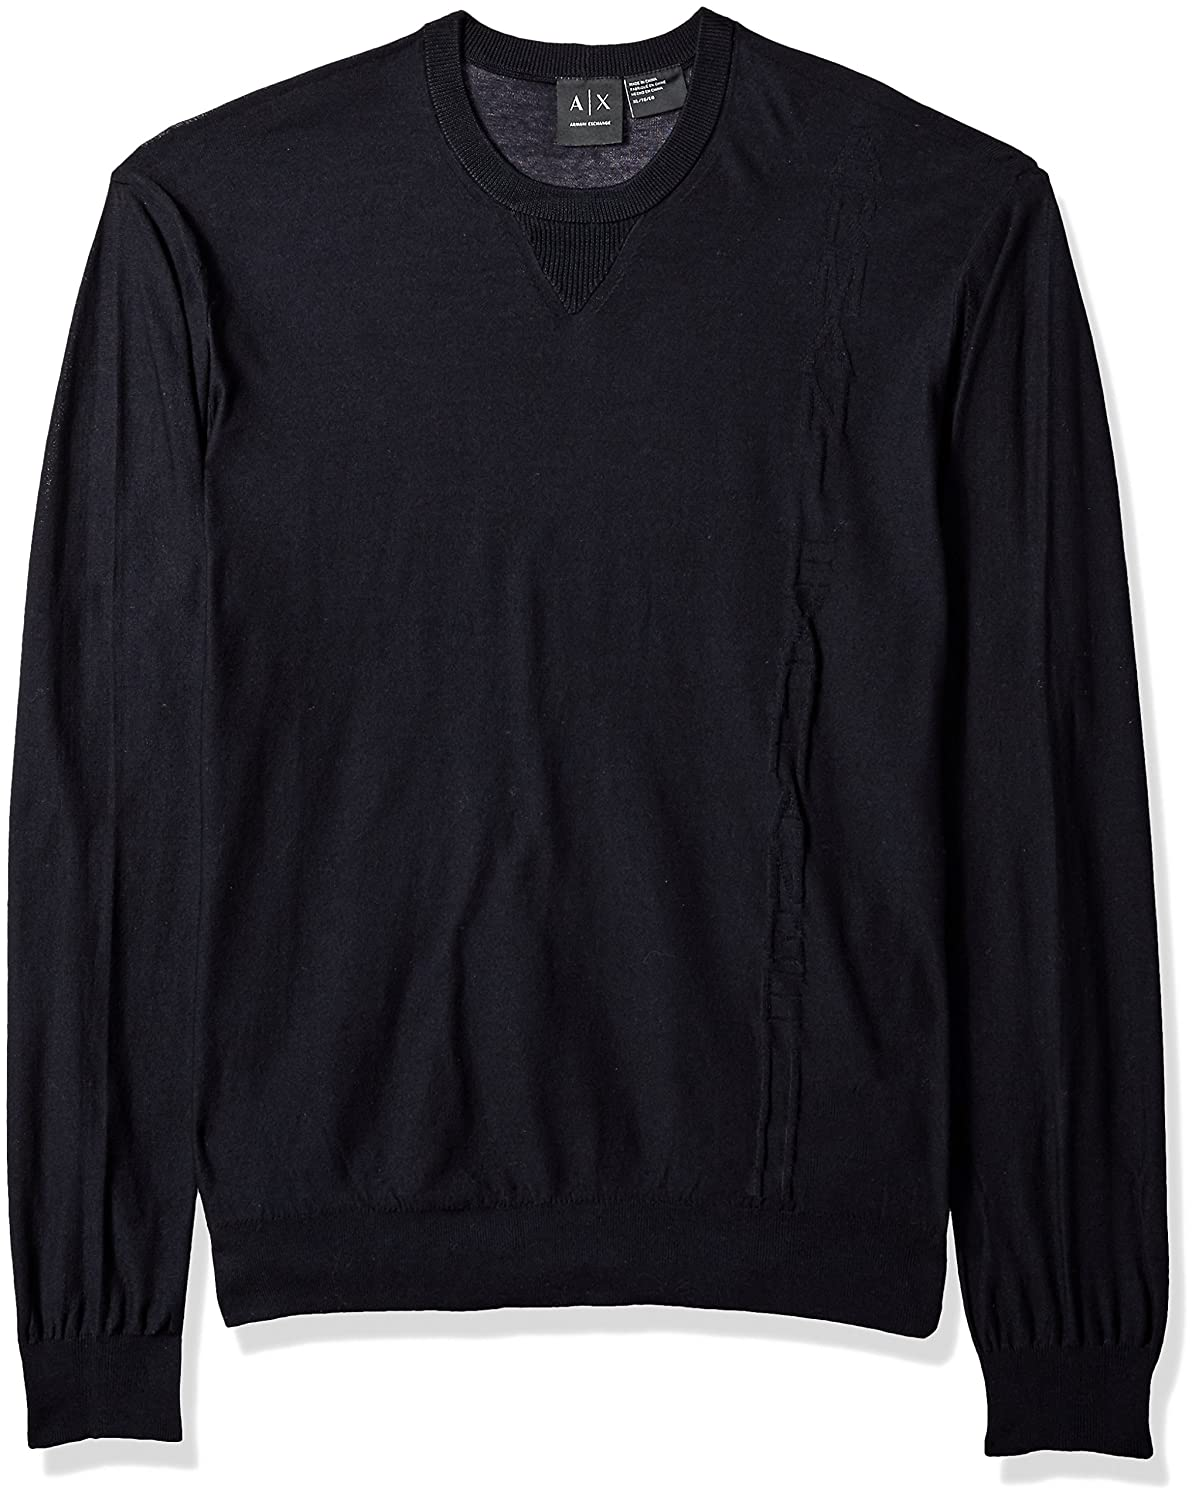 A|X Armani Exchange Men's Cotton Solid Pullover Black XL 8NZM86ZMH1Z1200